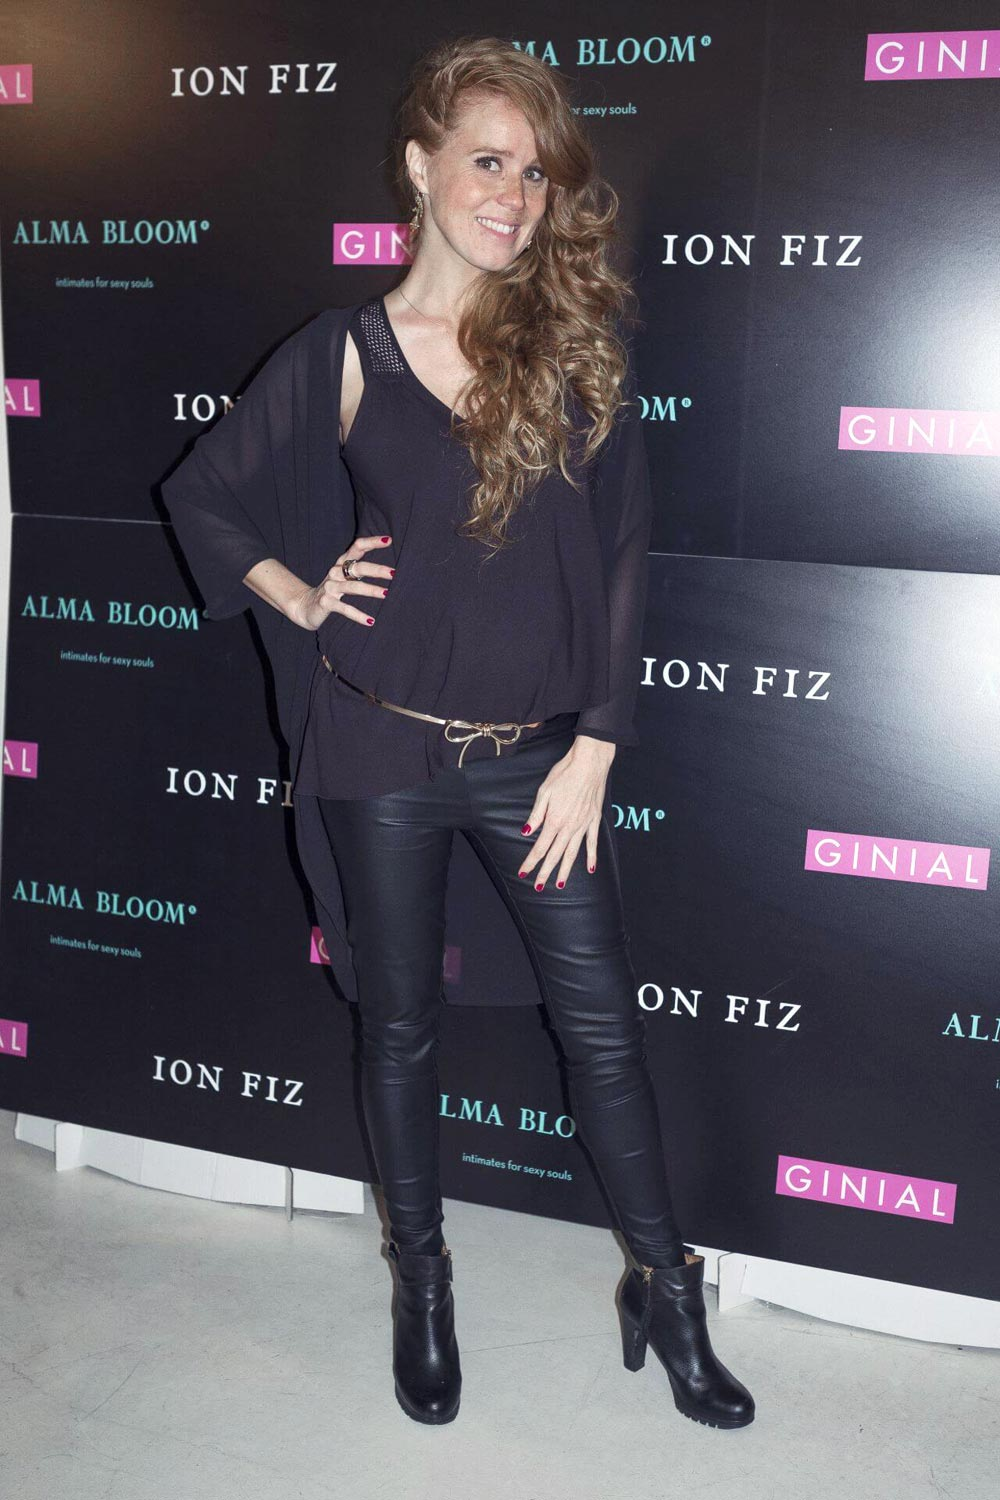 Maria Castro at the presentation of the new collection of Alma Bloom